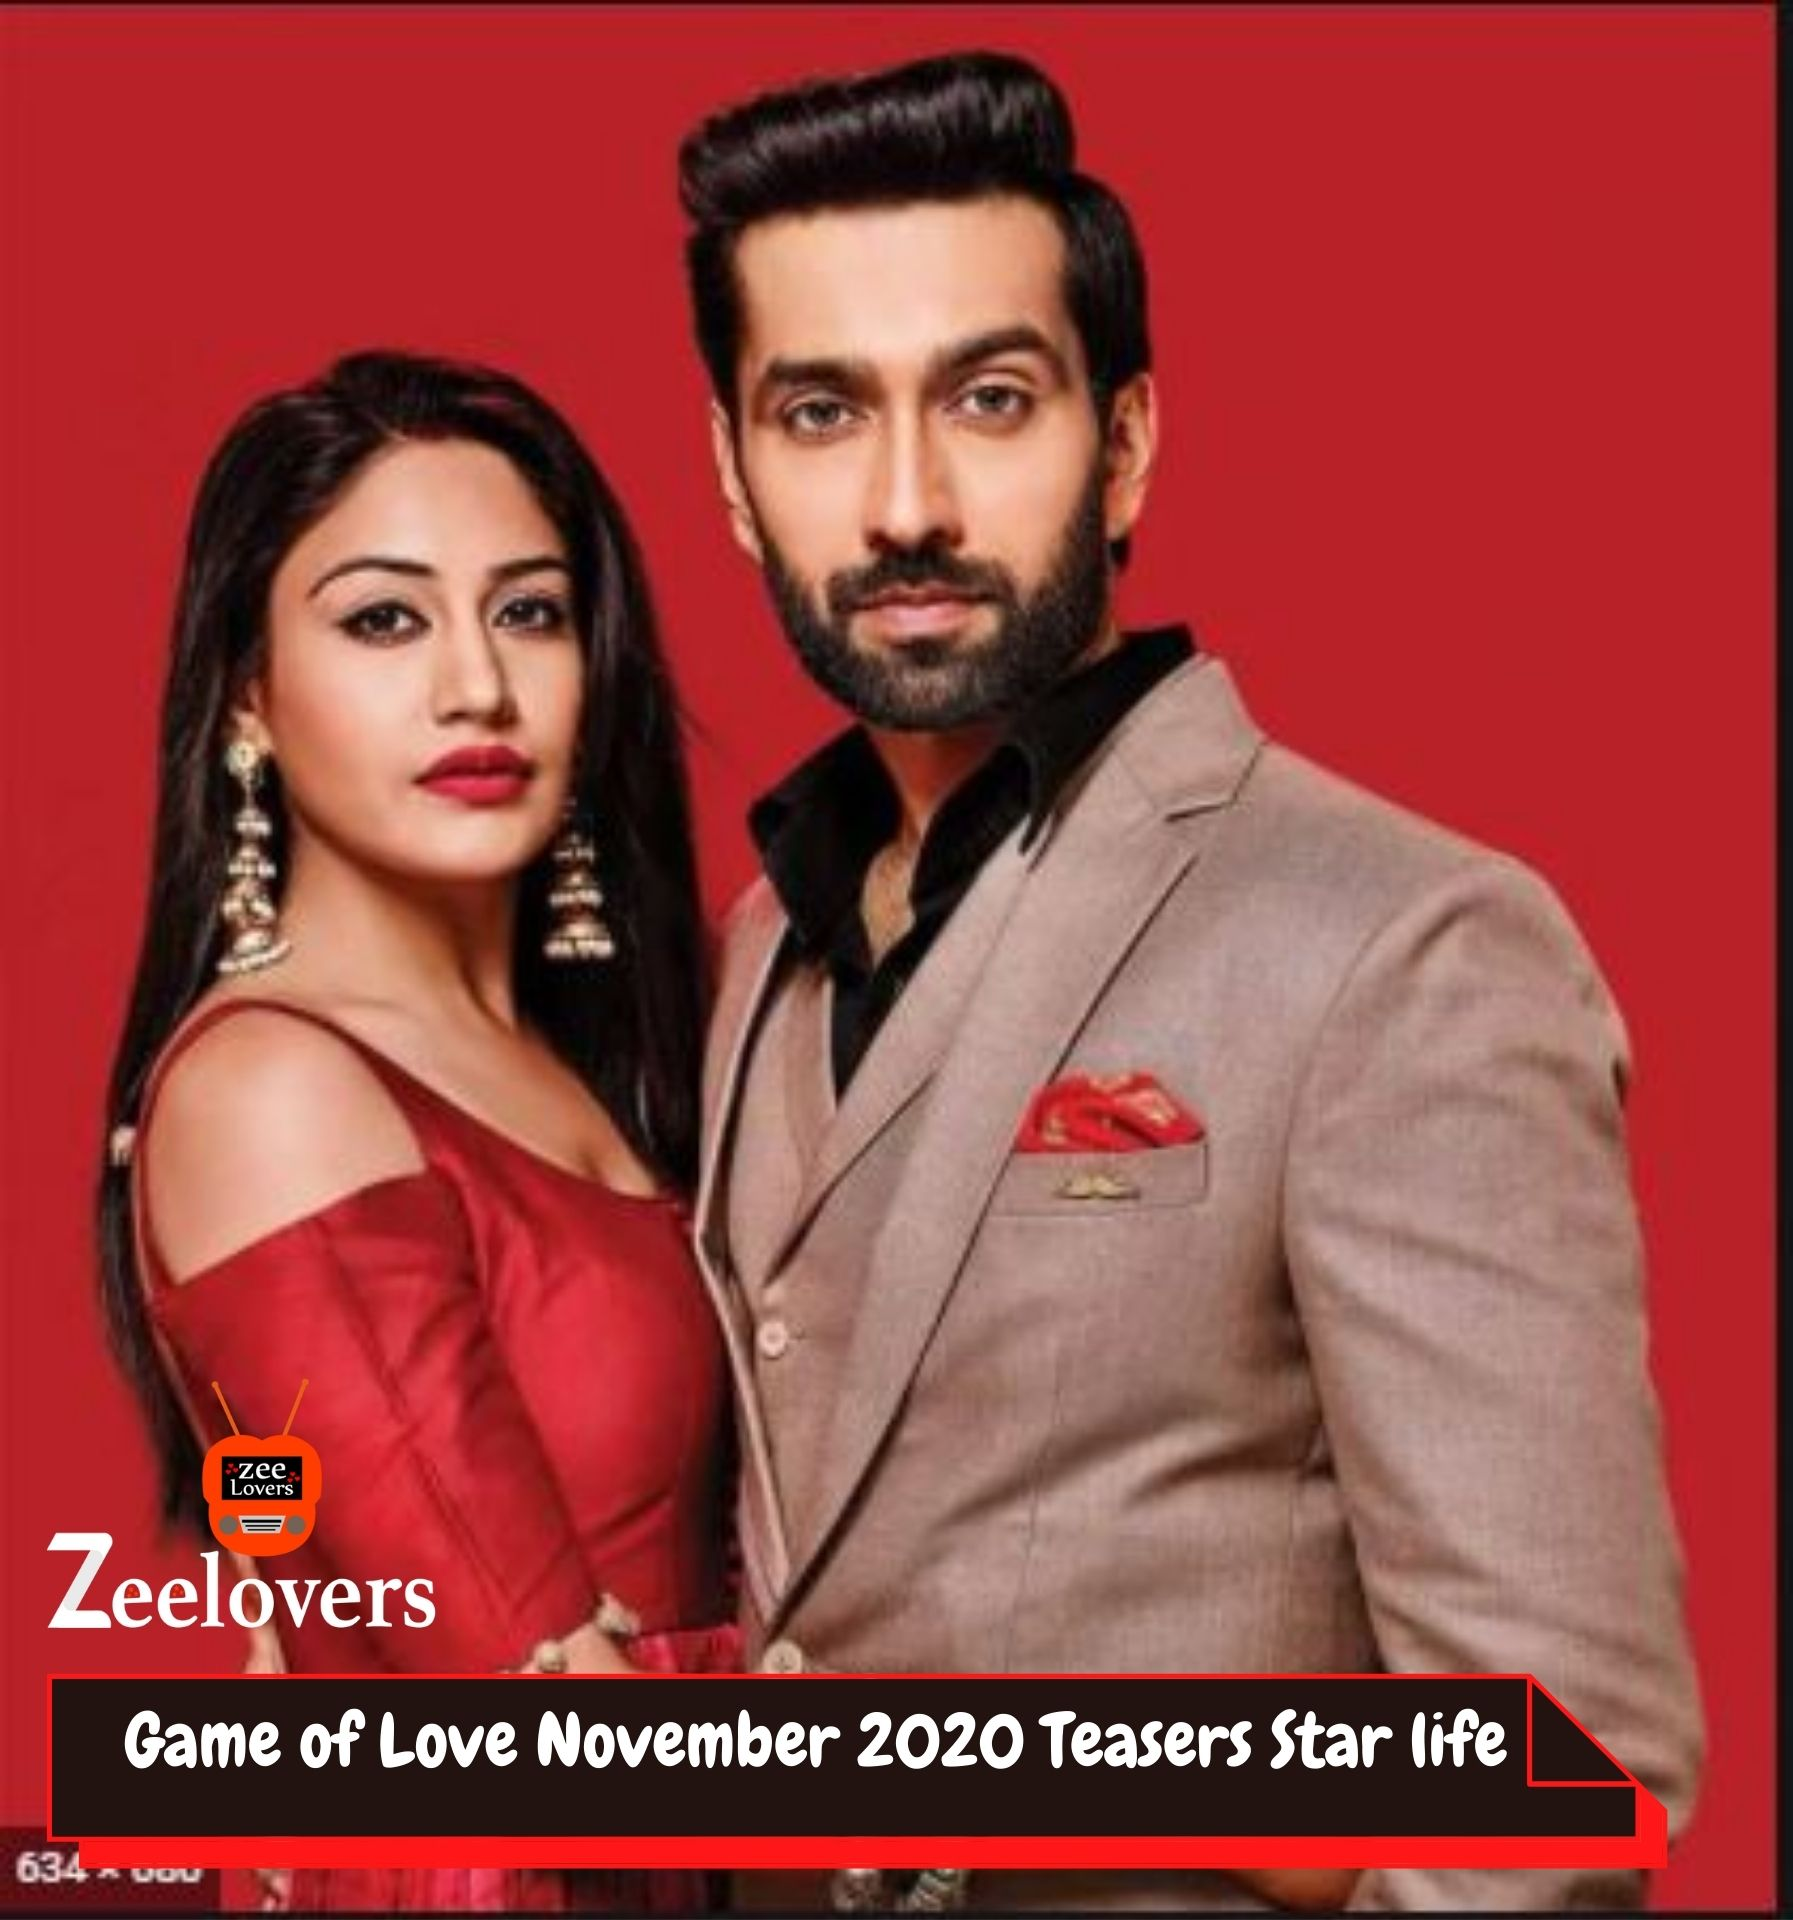 Game of Love november 2020 Teasers Star life